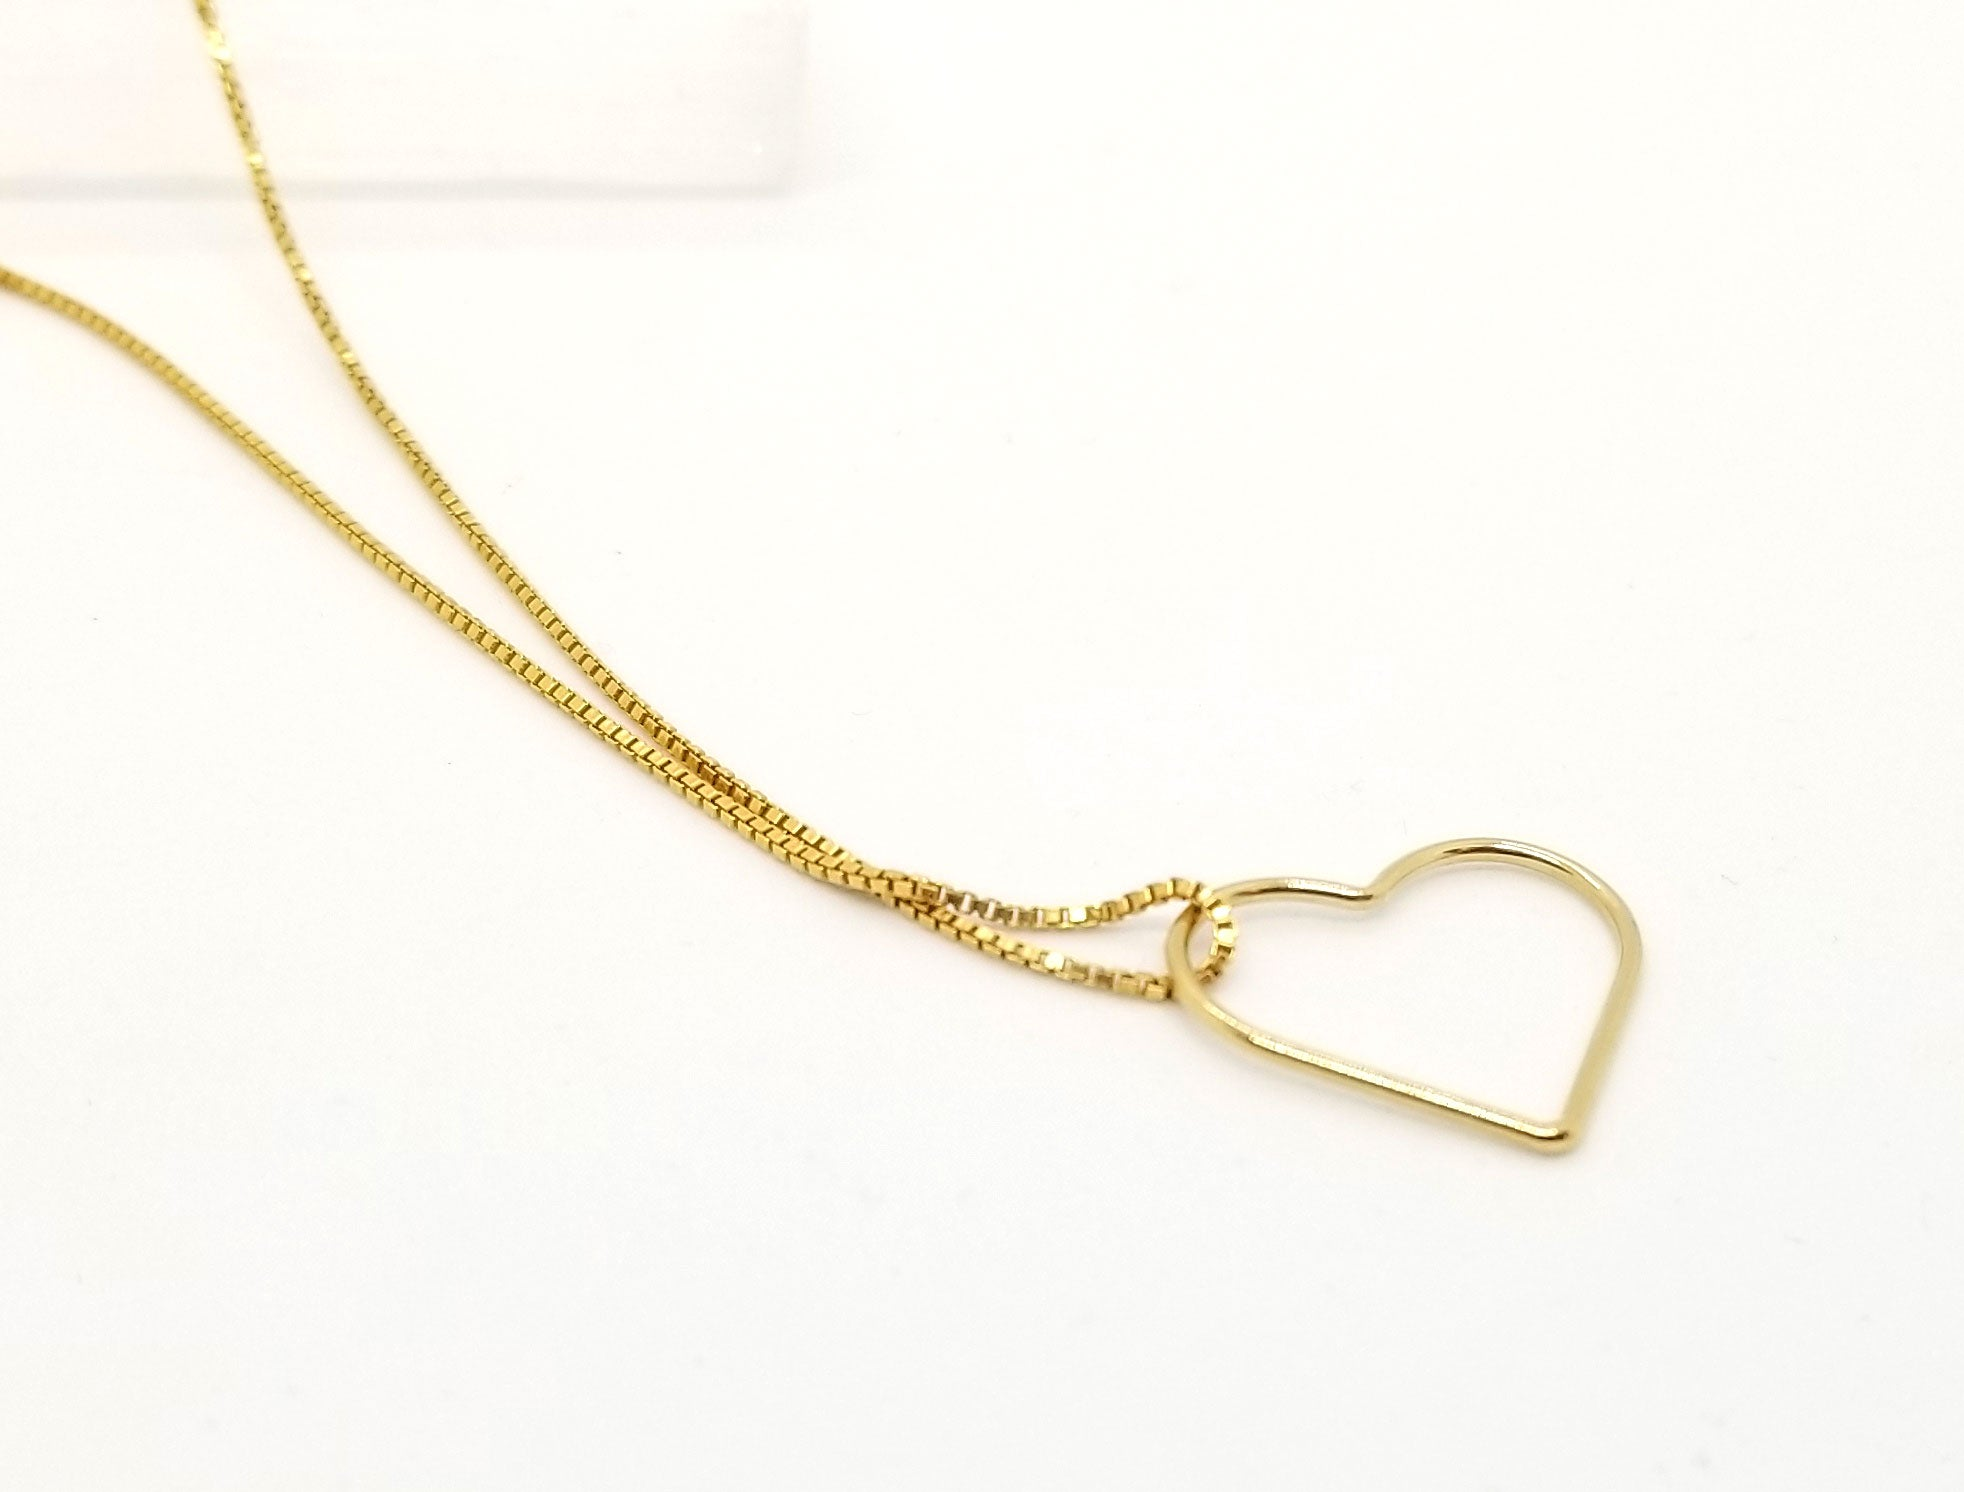 Big Heart Of Gold Floating Pendant Necklace